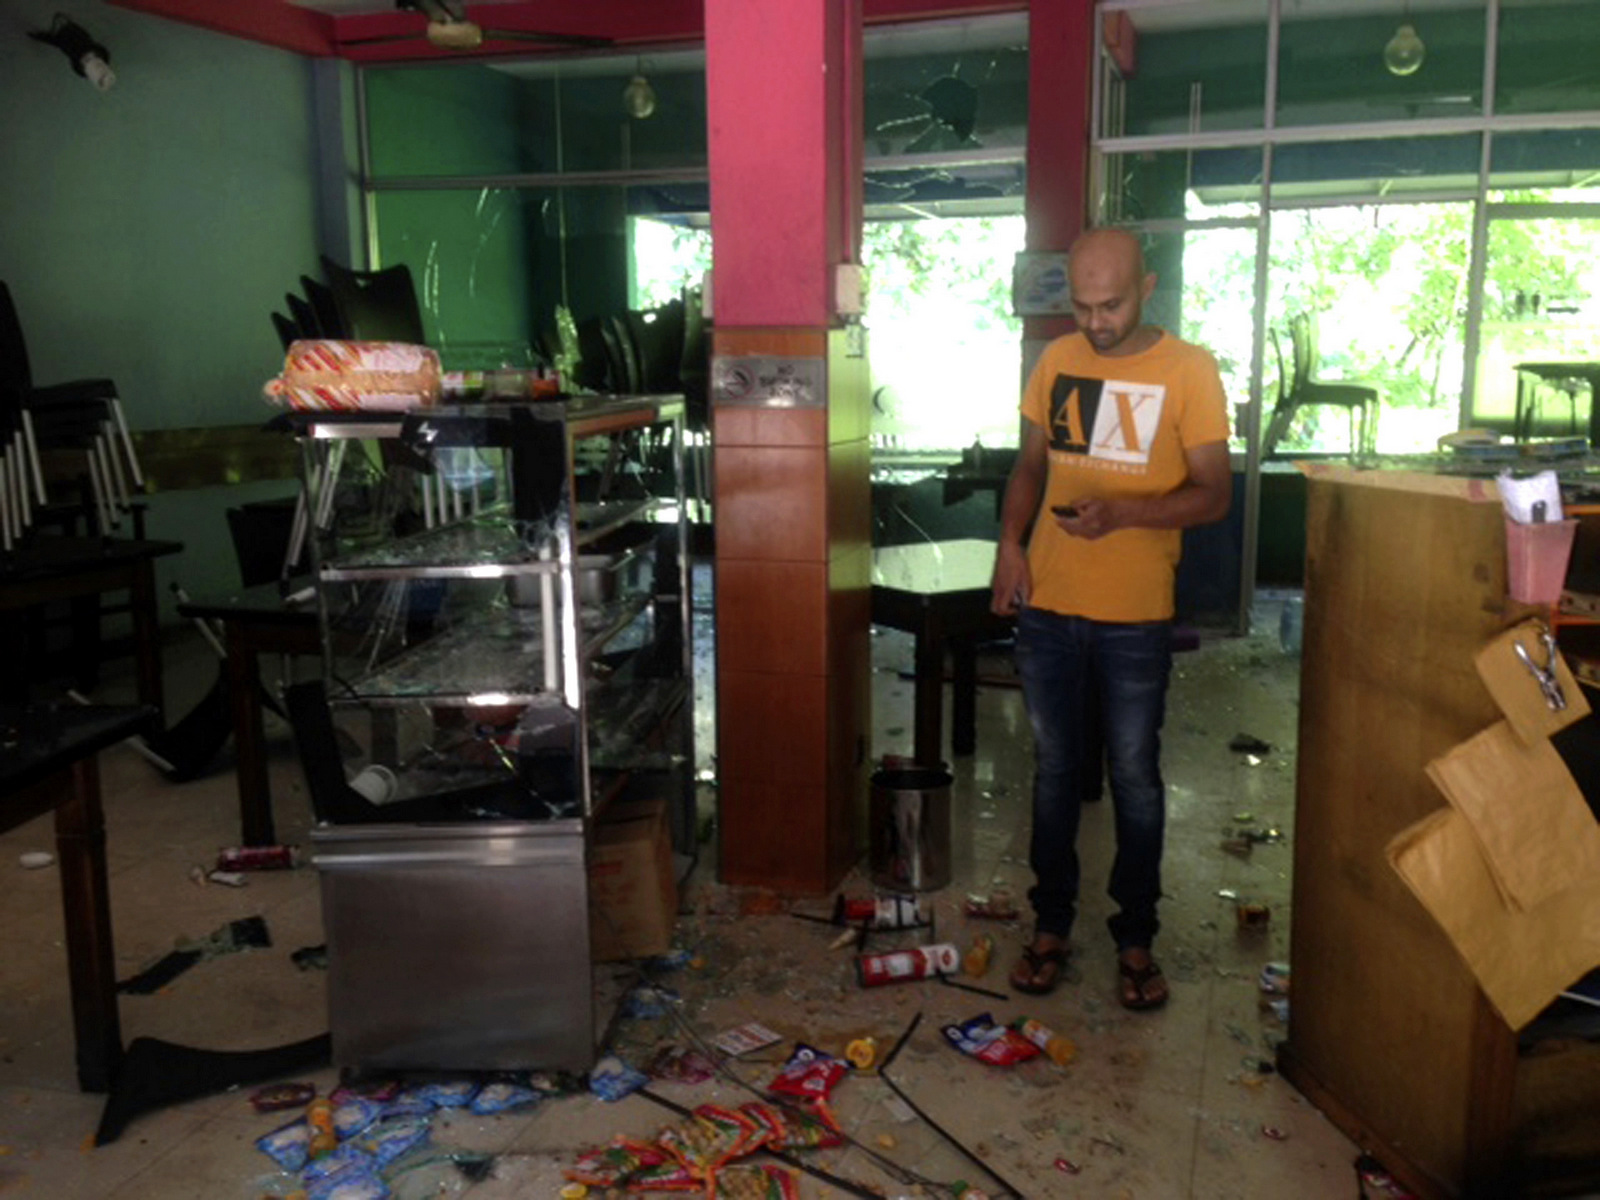 Mohamed Ramzeen makes a call from his mobile phone standing in his vandalized small restaurant in Pilimathalawa, Sri Lanka, March 8, 2018. About 50 people broke into Ramzeen's small restaurant destroying nearly everything they found, he said. Buddhist mobs swept through Muslim neighborhoods in Sri Lanka's central hills, destroying stores and restaurants despite a curfew, a state of emergency and a heavy deployment of security forces. (AP/Bharatha Mallawarachchi)